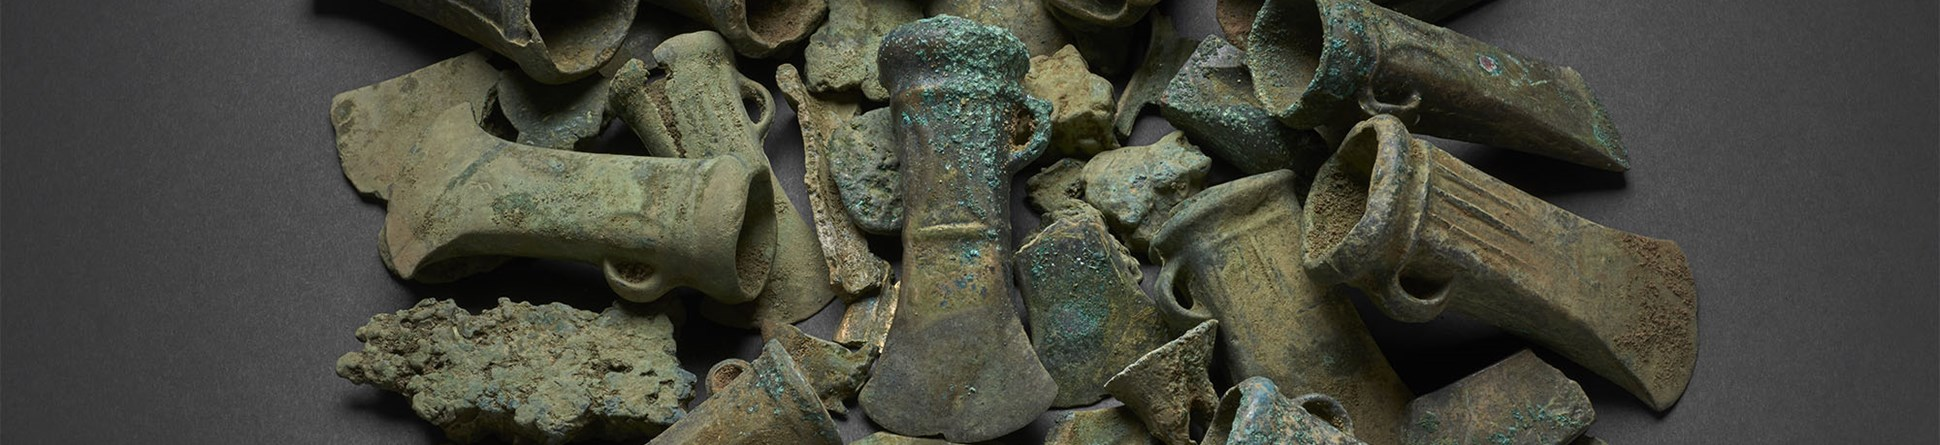 A selection of objects from the Havering Hoard